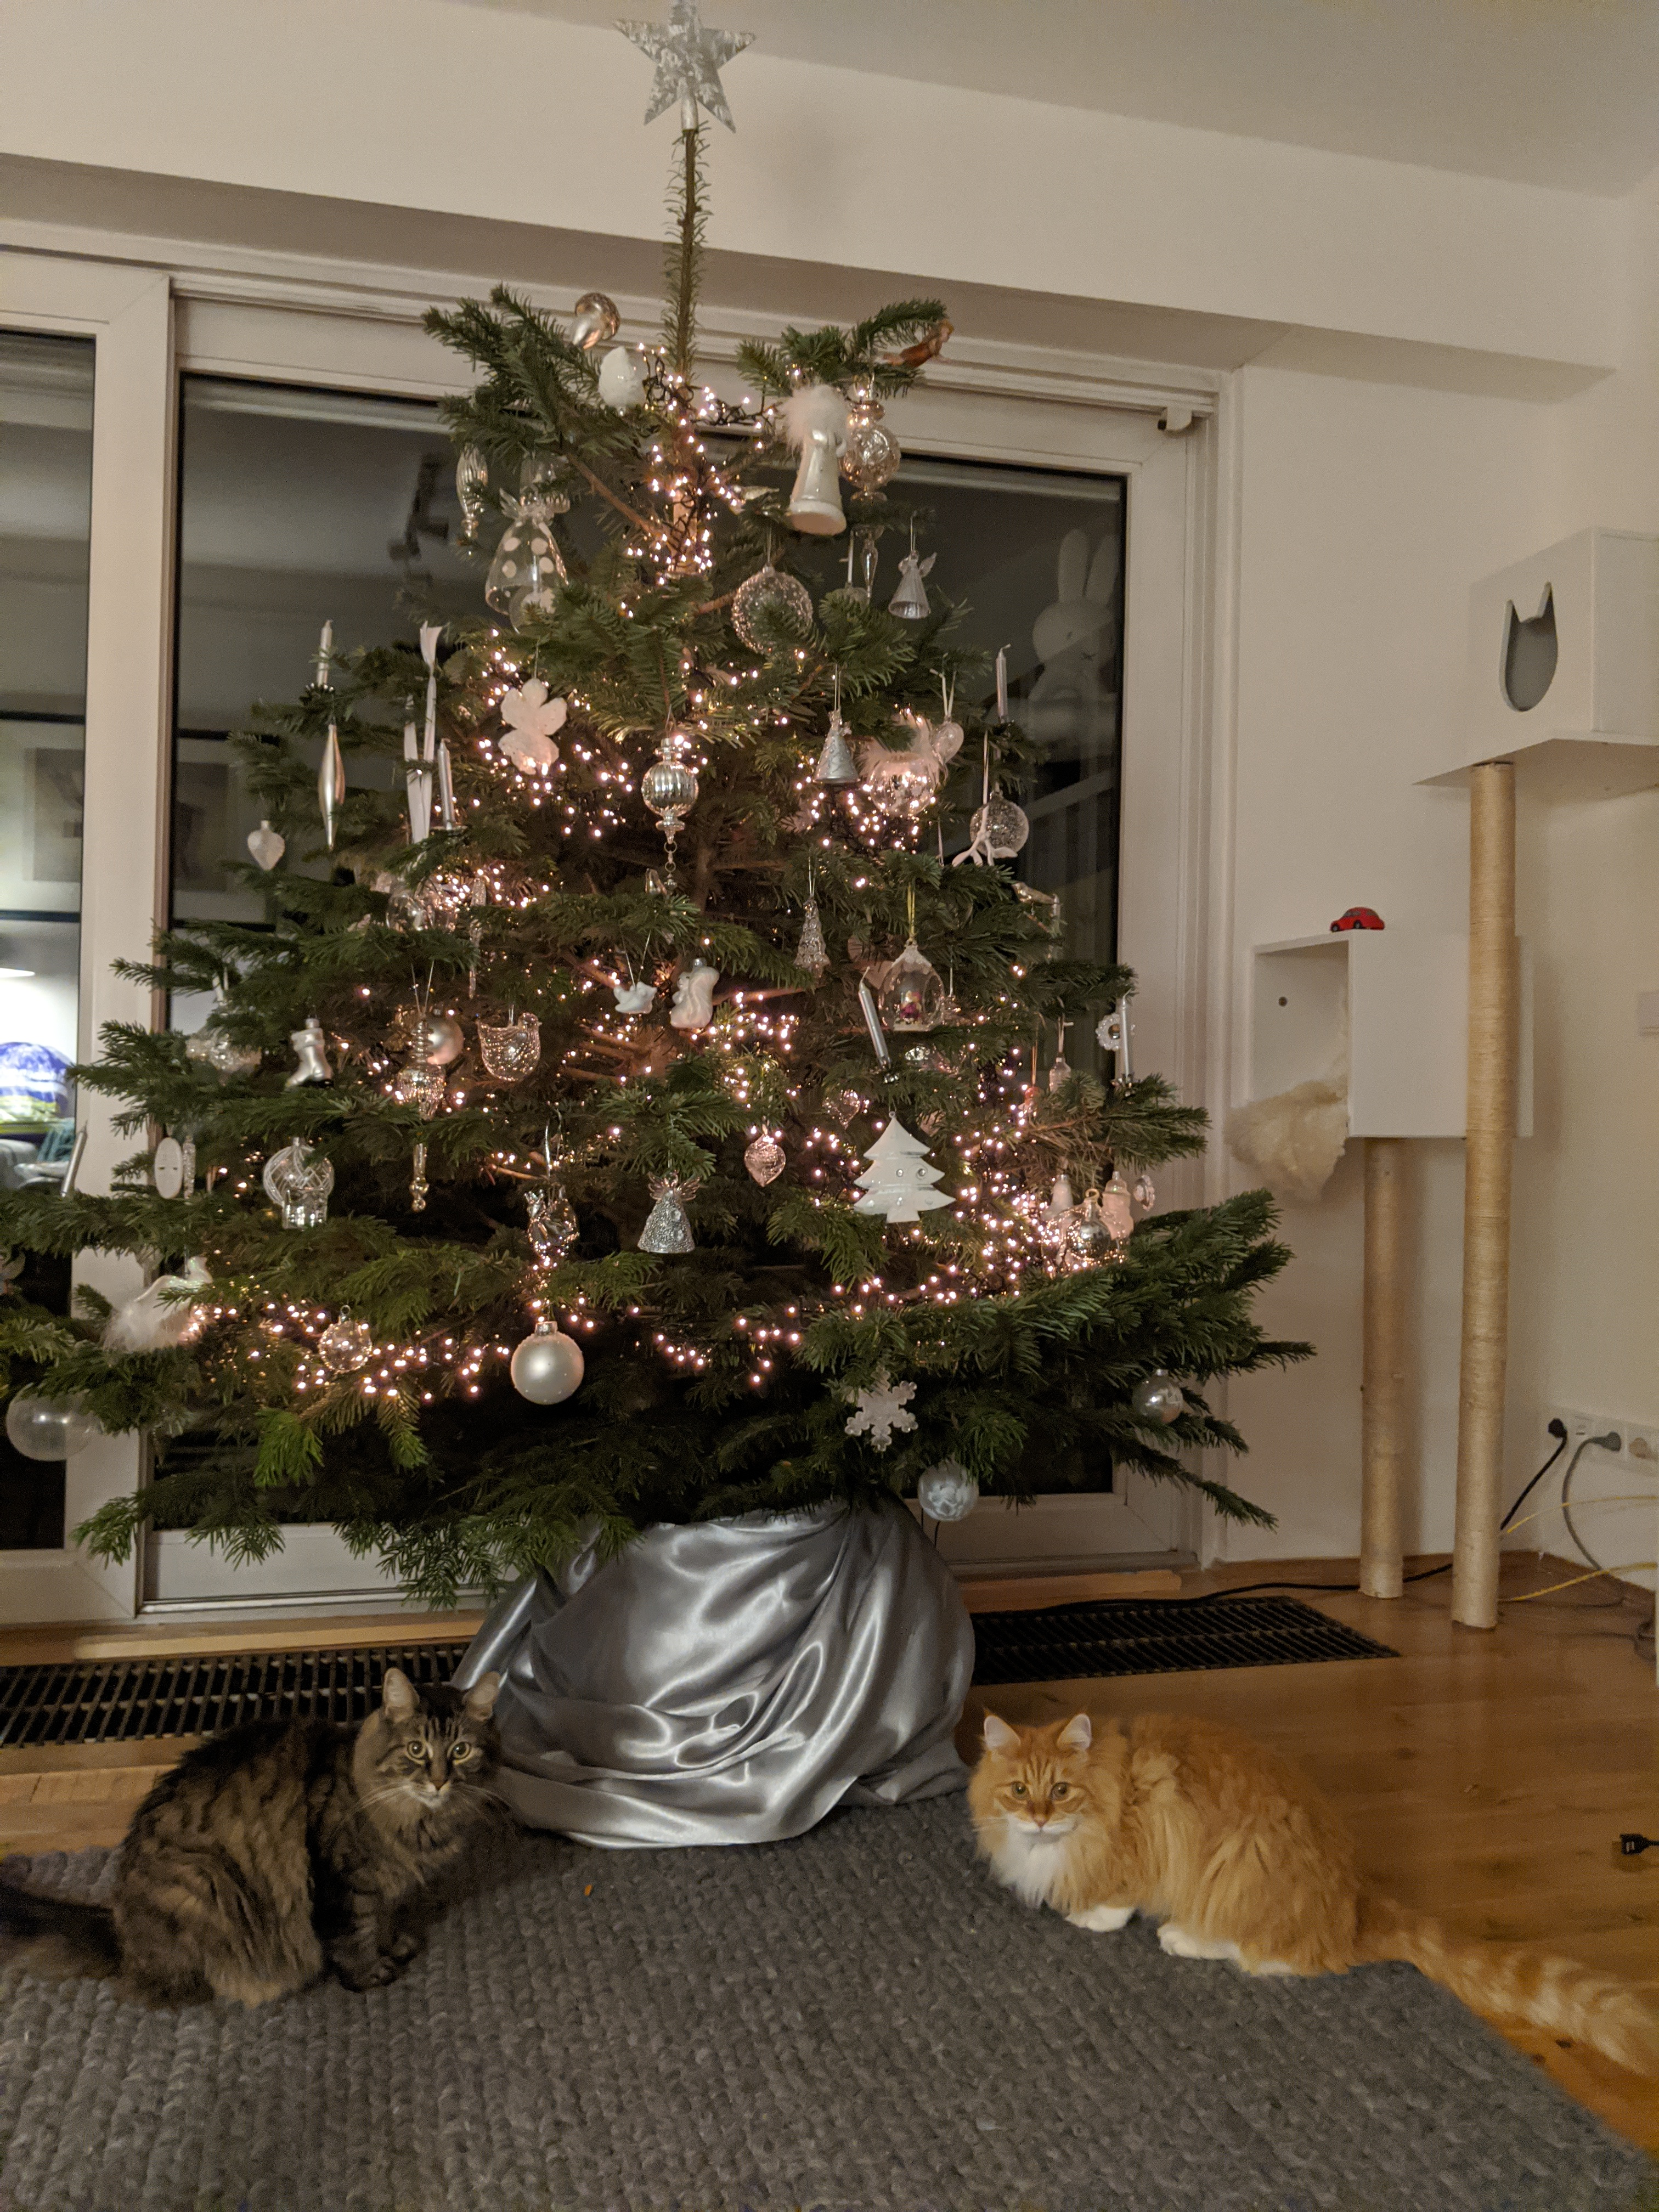 Christmas tree 2019, installed by Neozoon, decoration by Neozoon wife and daughter, Lotje and Oliva tricked to sit under the tree by cat snacks as treat